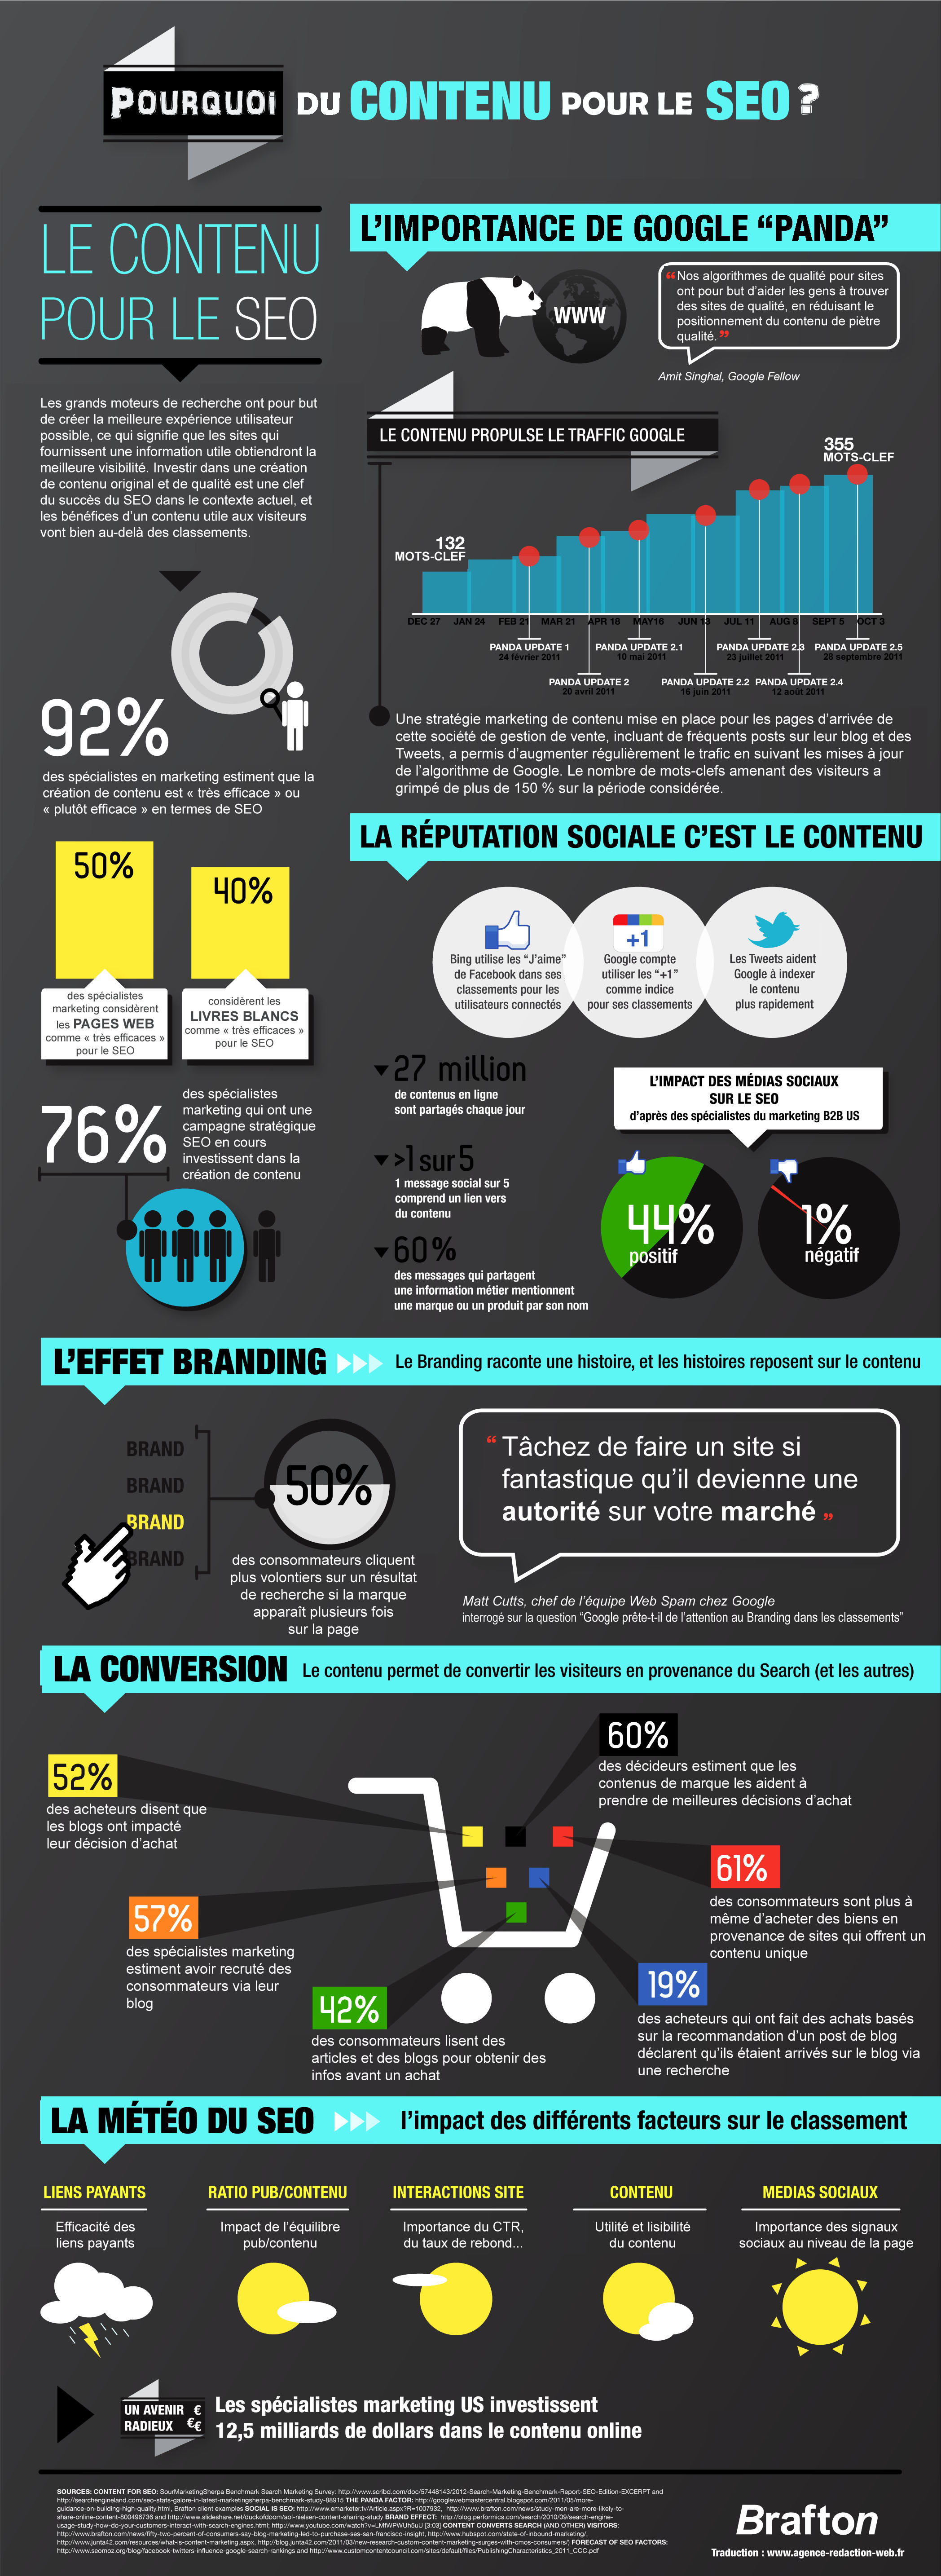 Infographie par BRAFTON : http://www.brafton.com/infographics/why-content-for-seo